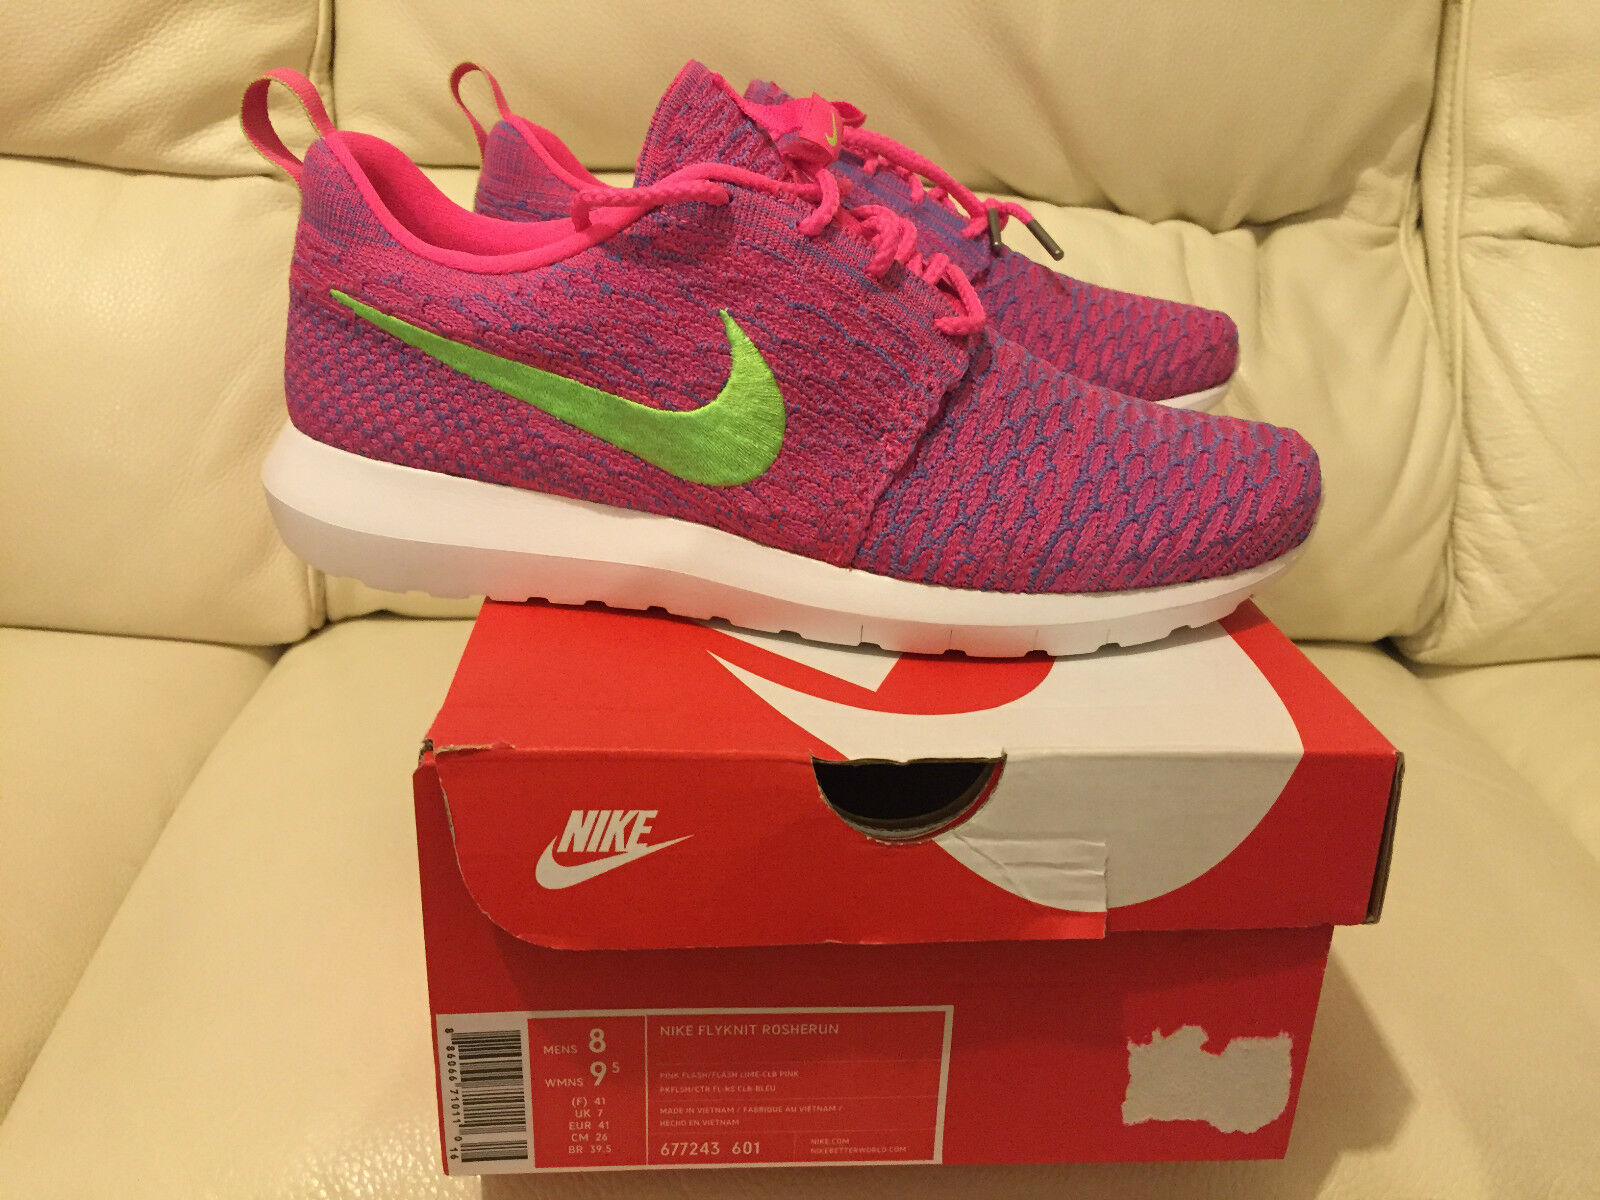 NIKE FLYKNIT ROSHE RUN PINK FLASH SIZES LIME ALL SIZES FLASH UK 7-12 LIMITED EDITION NEW 15837b